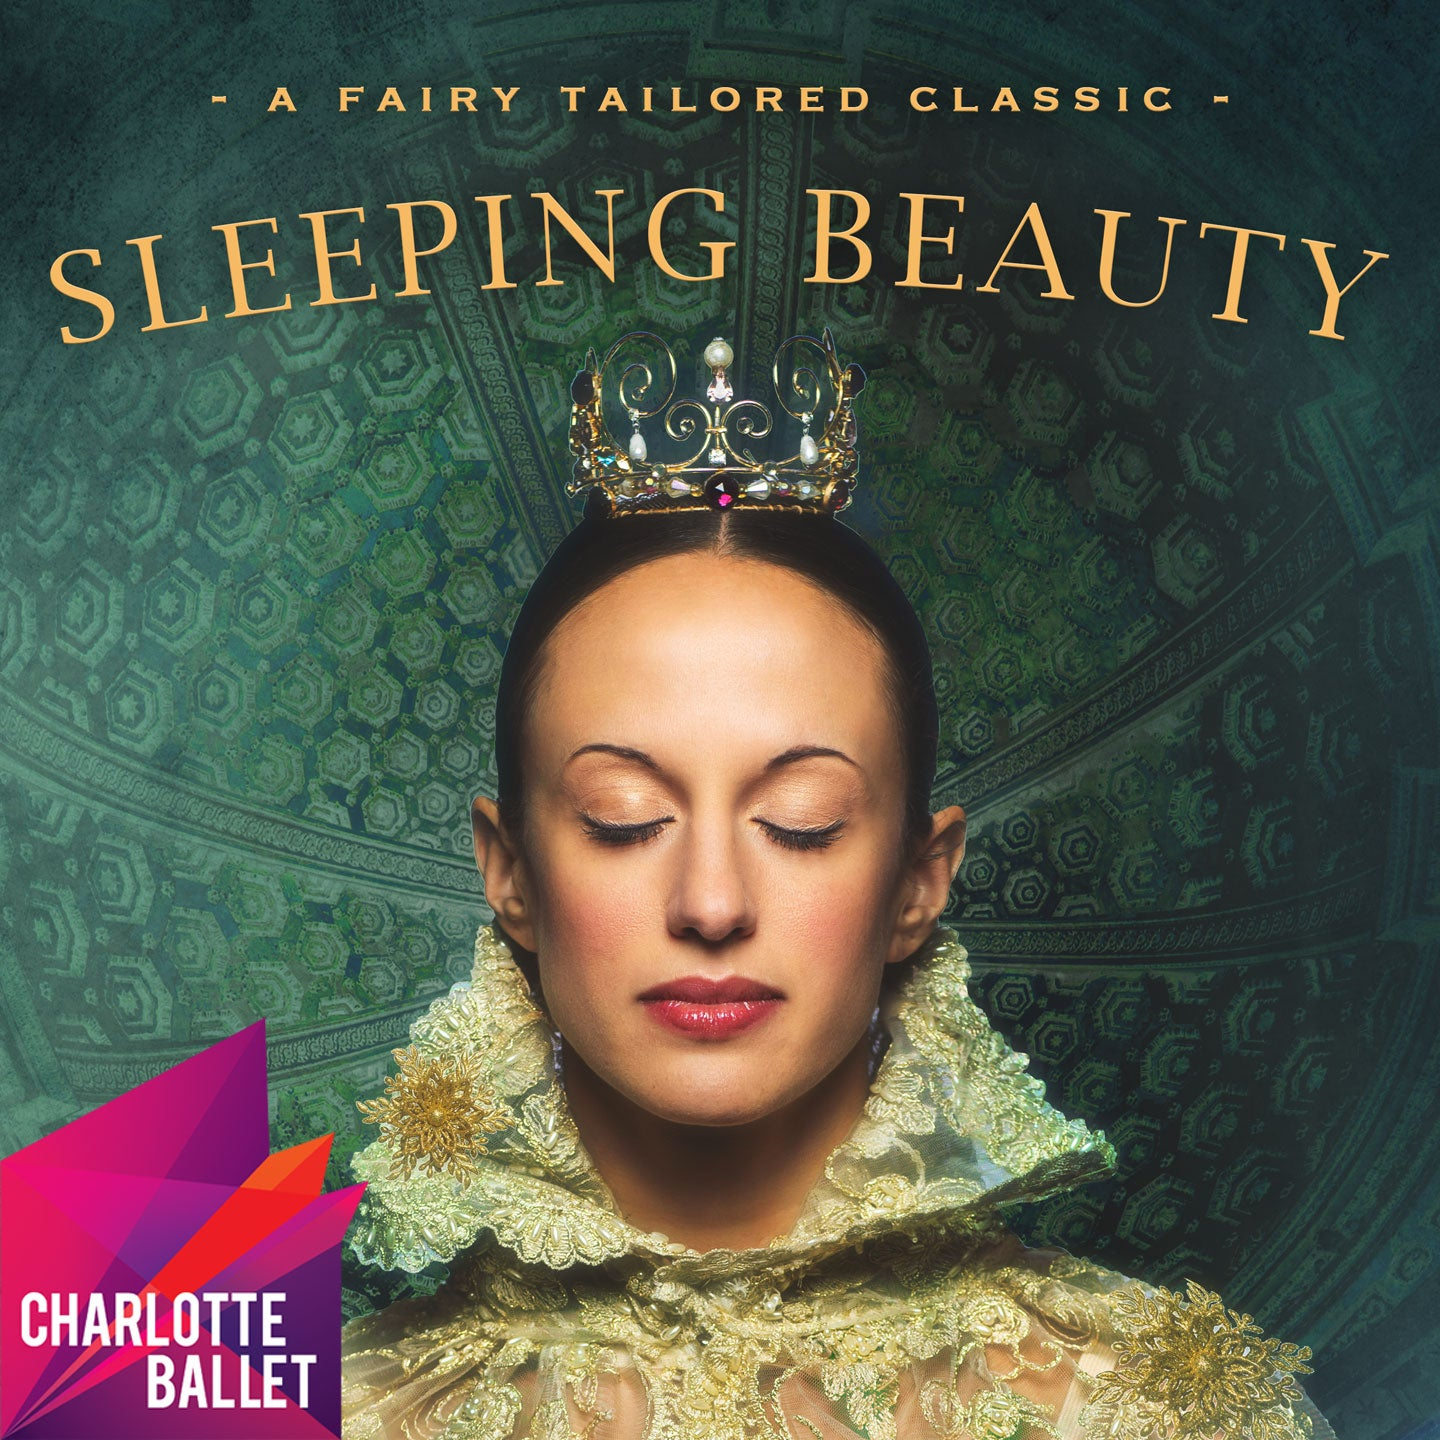 Charlotte Ballet: Sleeping Beauty